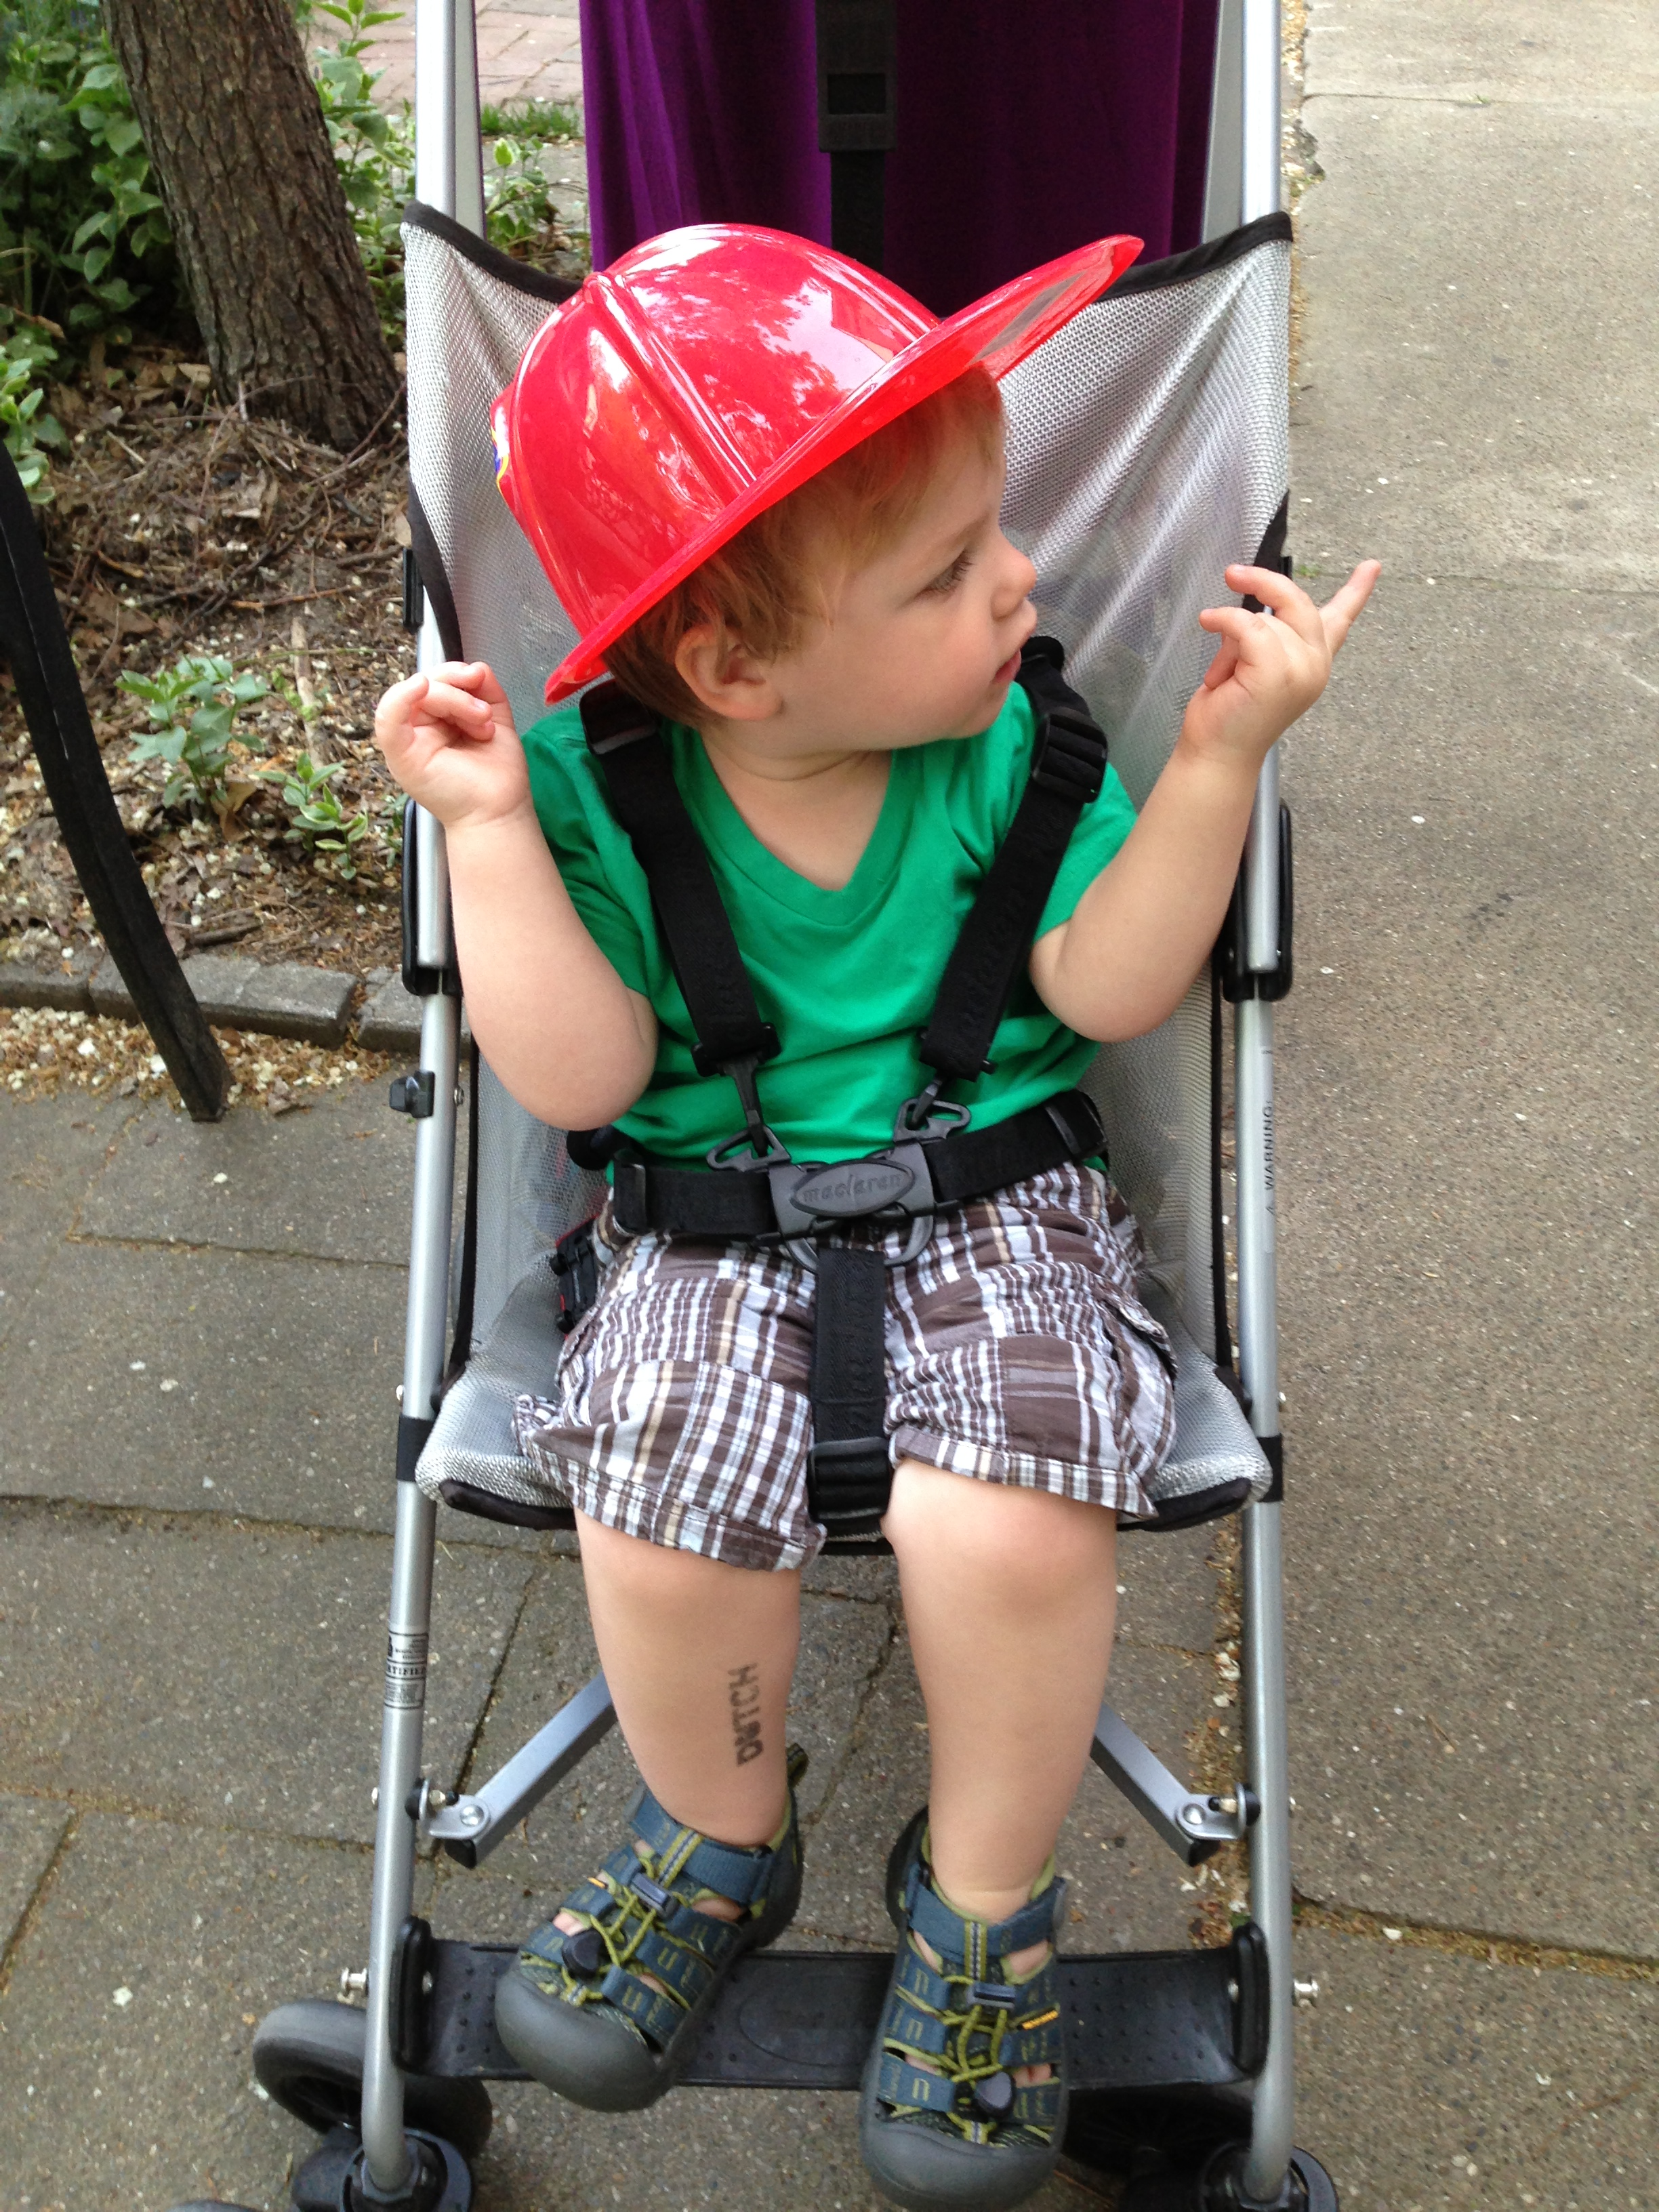 and then we insist on wearing our fireman hat around downtown for a stroll. why not? perhaps we've established a new summer uniform??